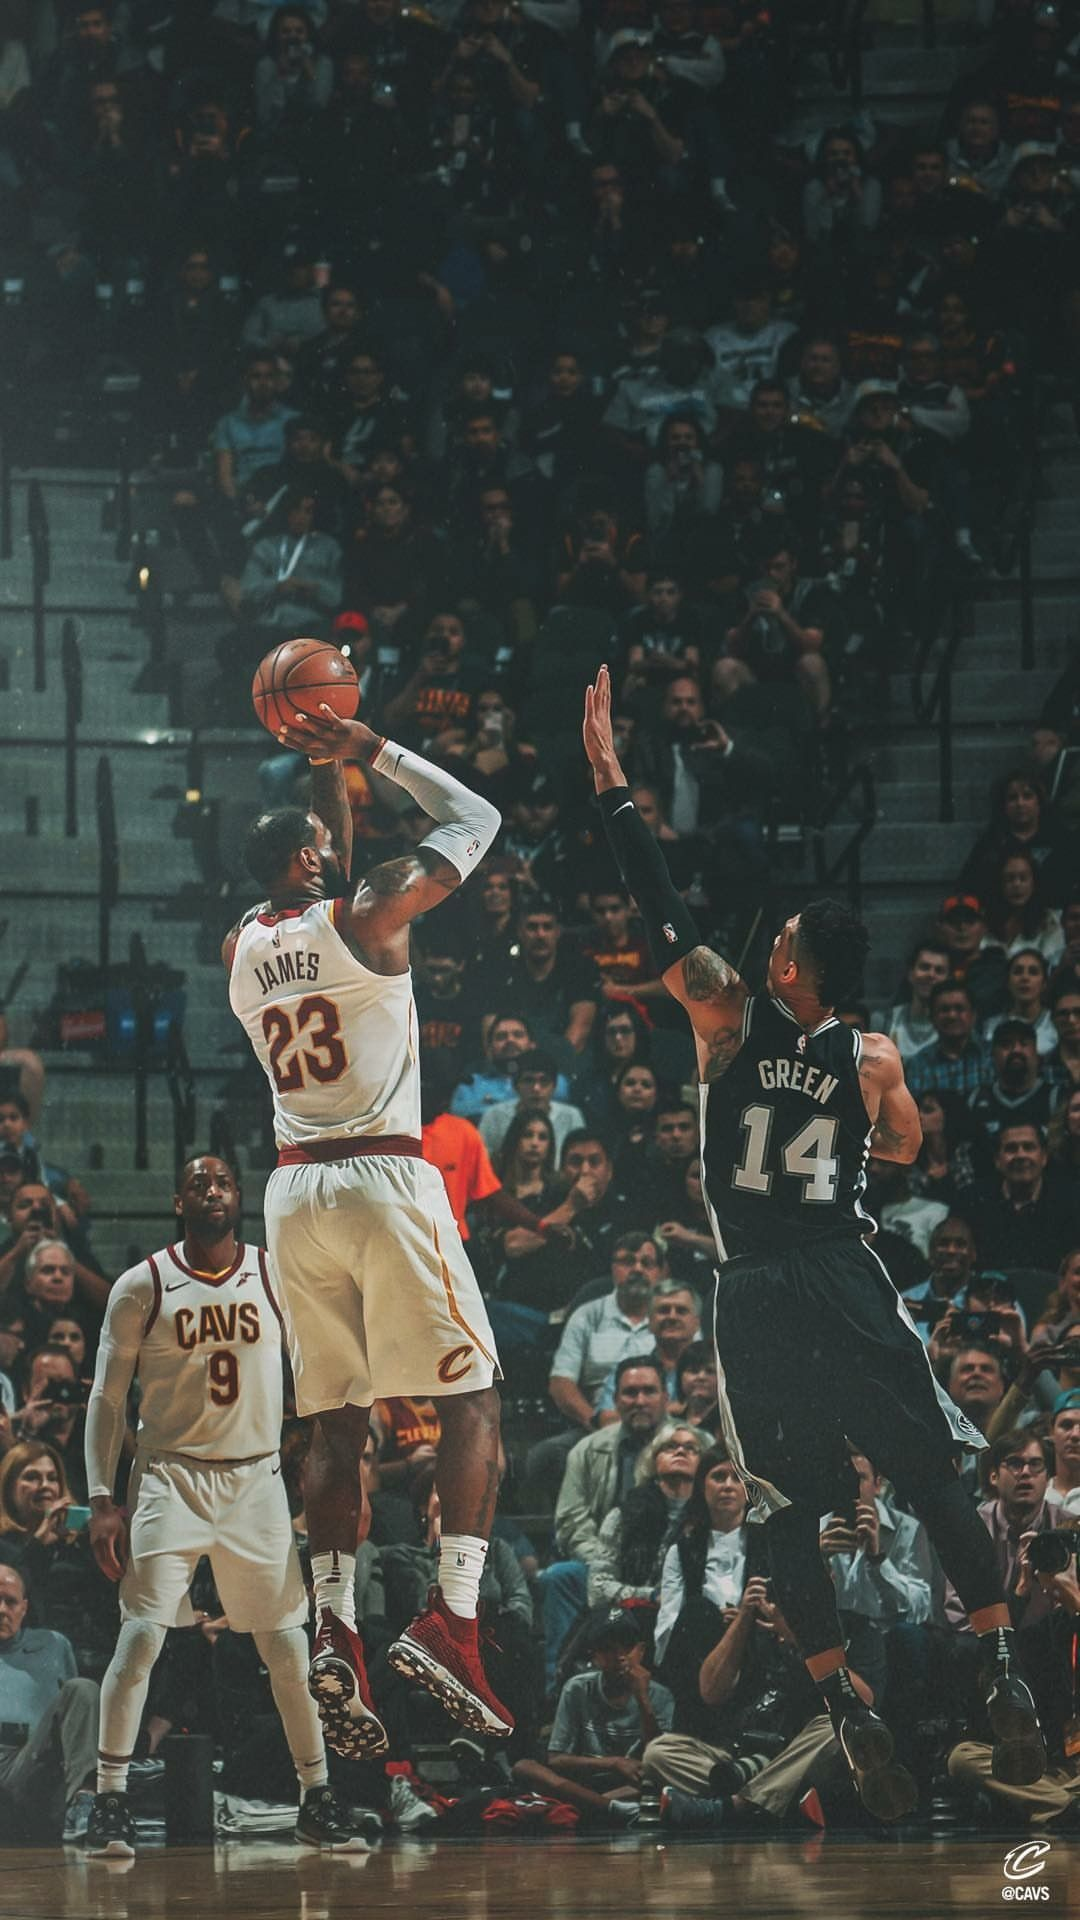 Lebron James wallpaper Lebron james, Lebron james dunking